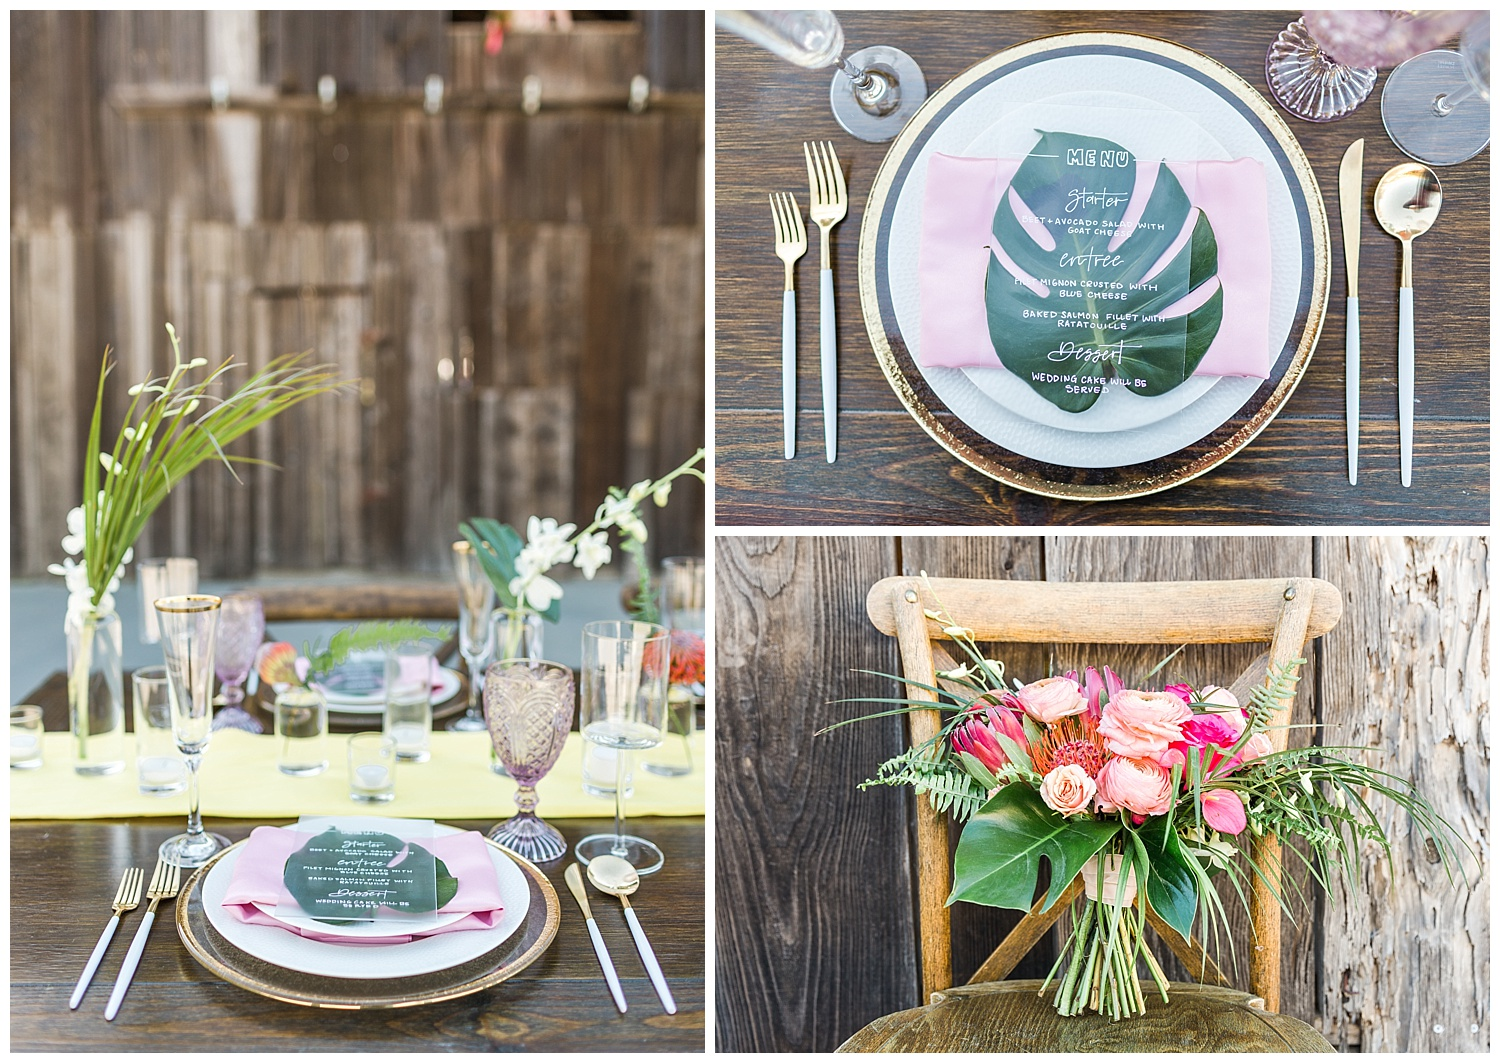 Tropical-table-setting-all-about-events-rentals.jpg